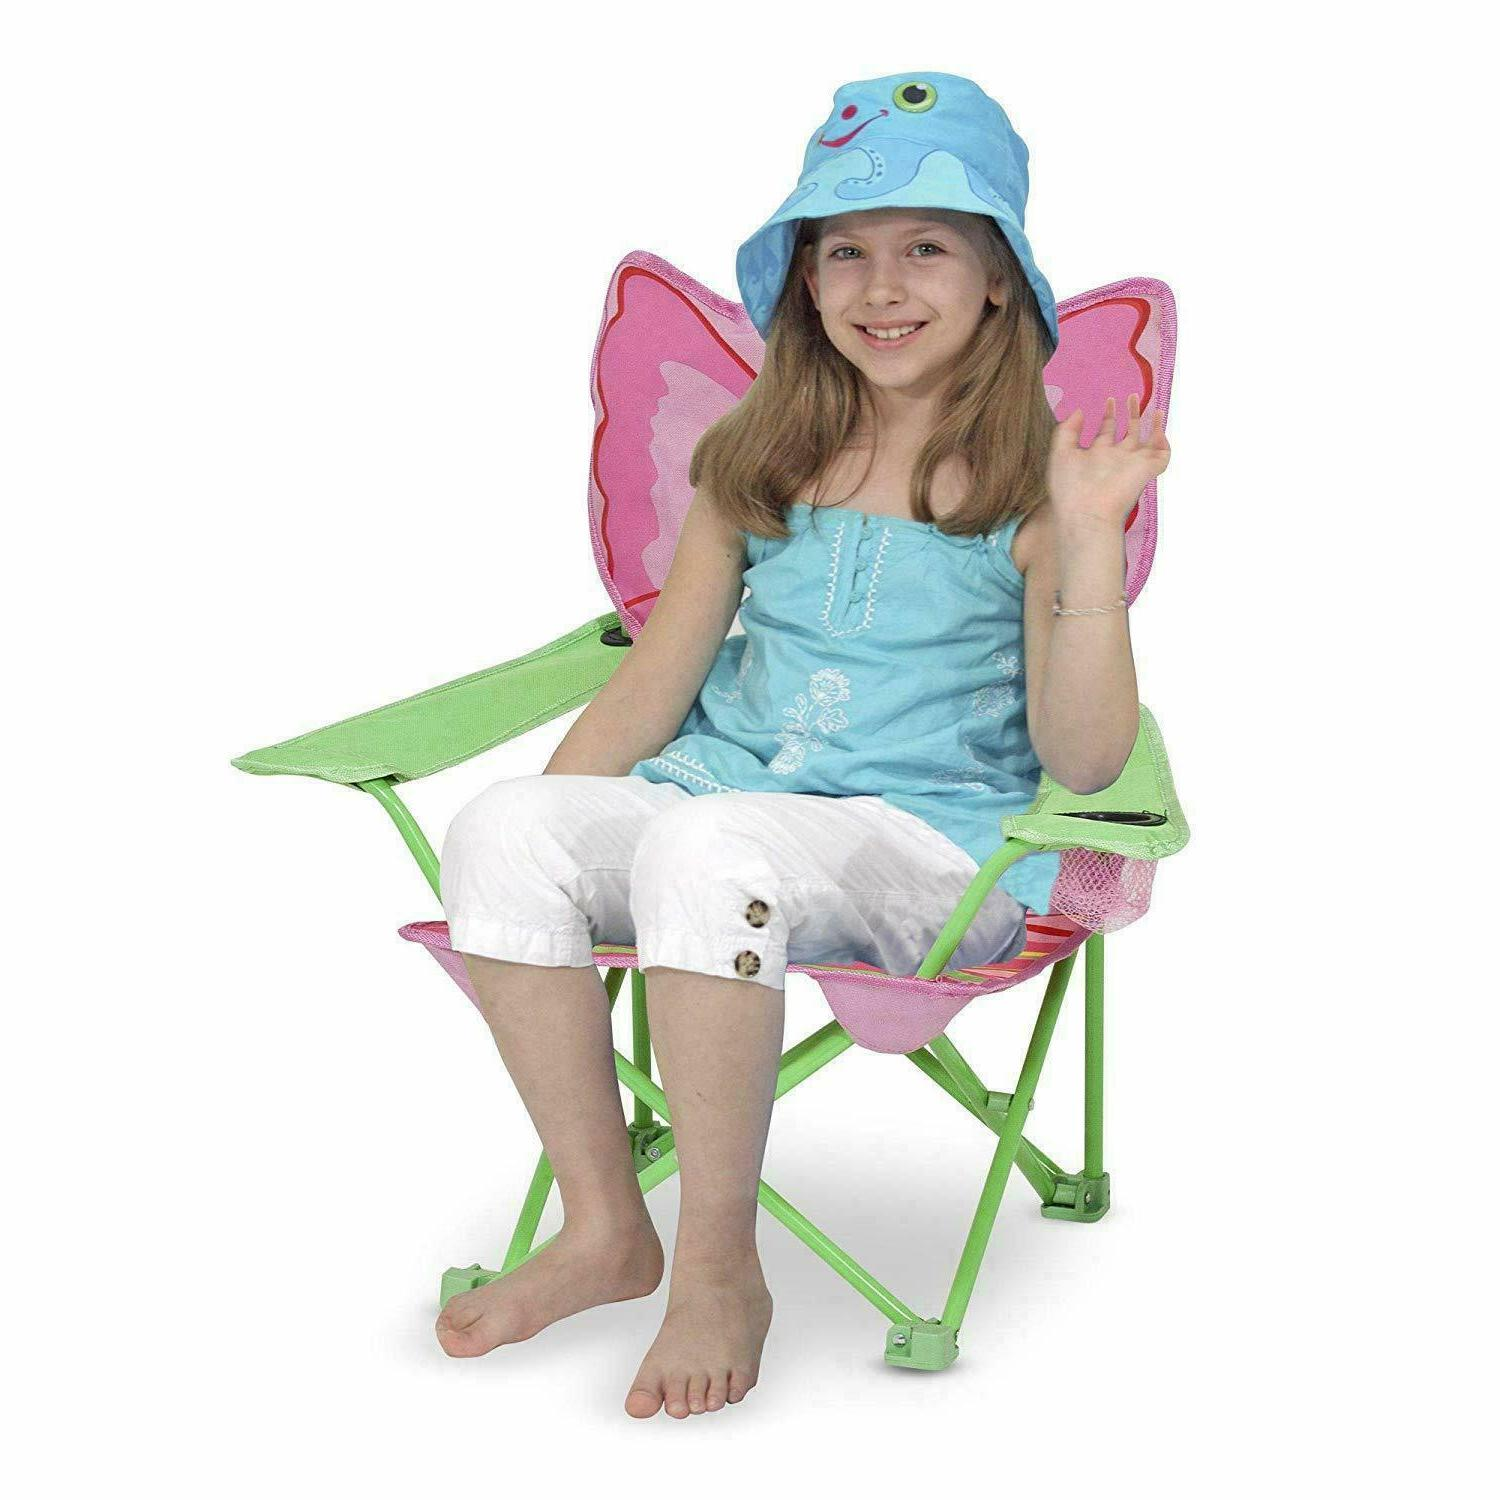 Camping Butterfly Seat Folding Lawn 3+ Years